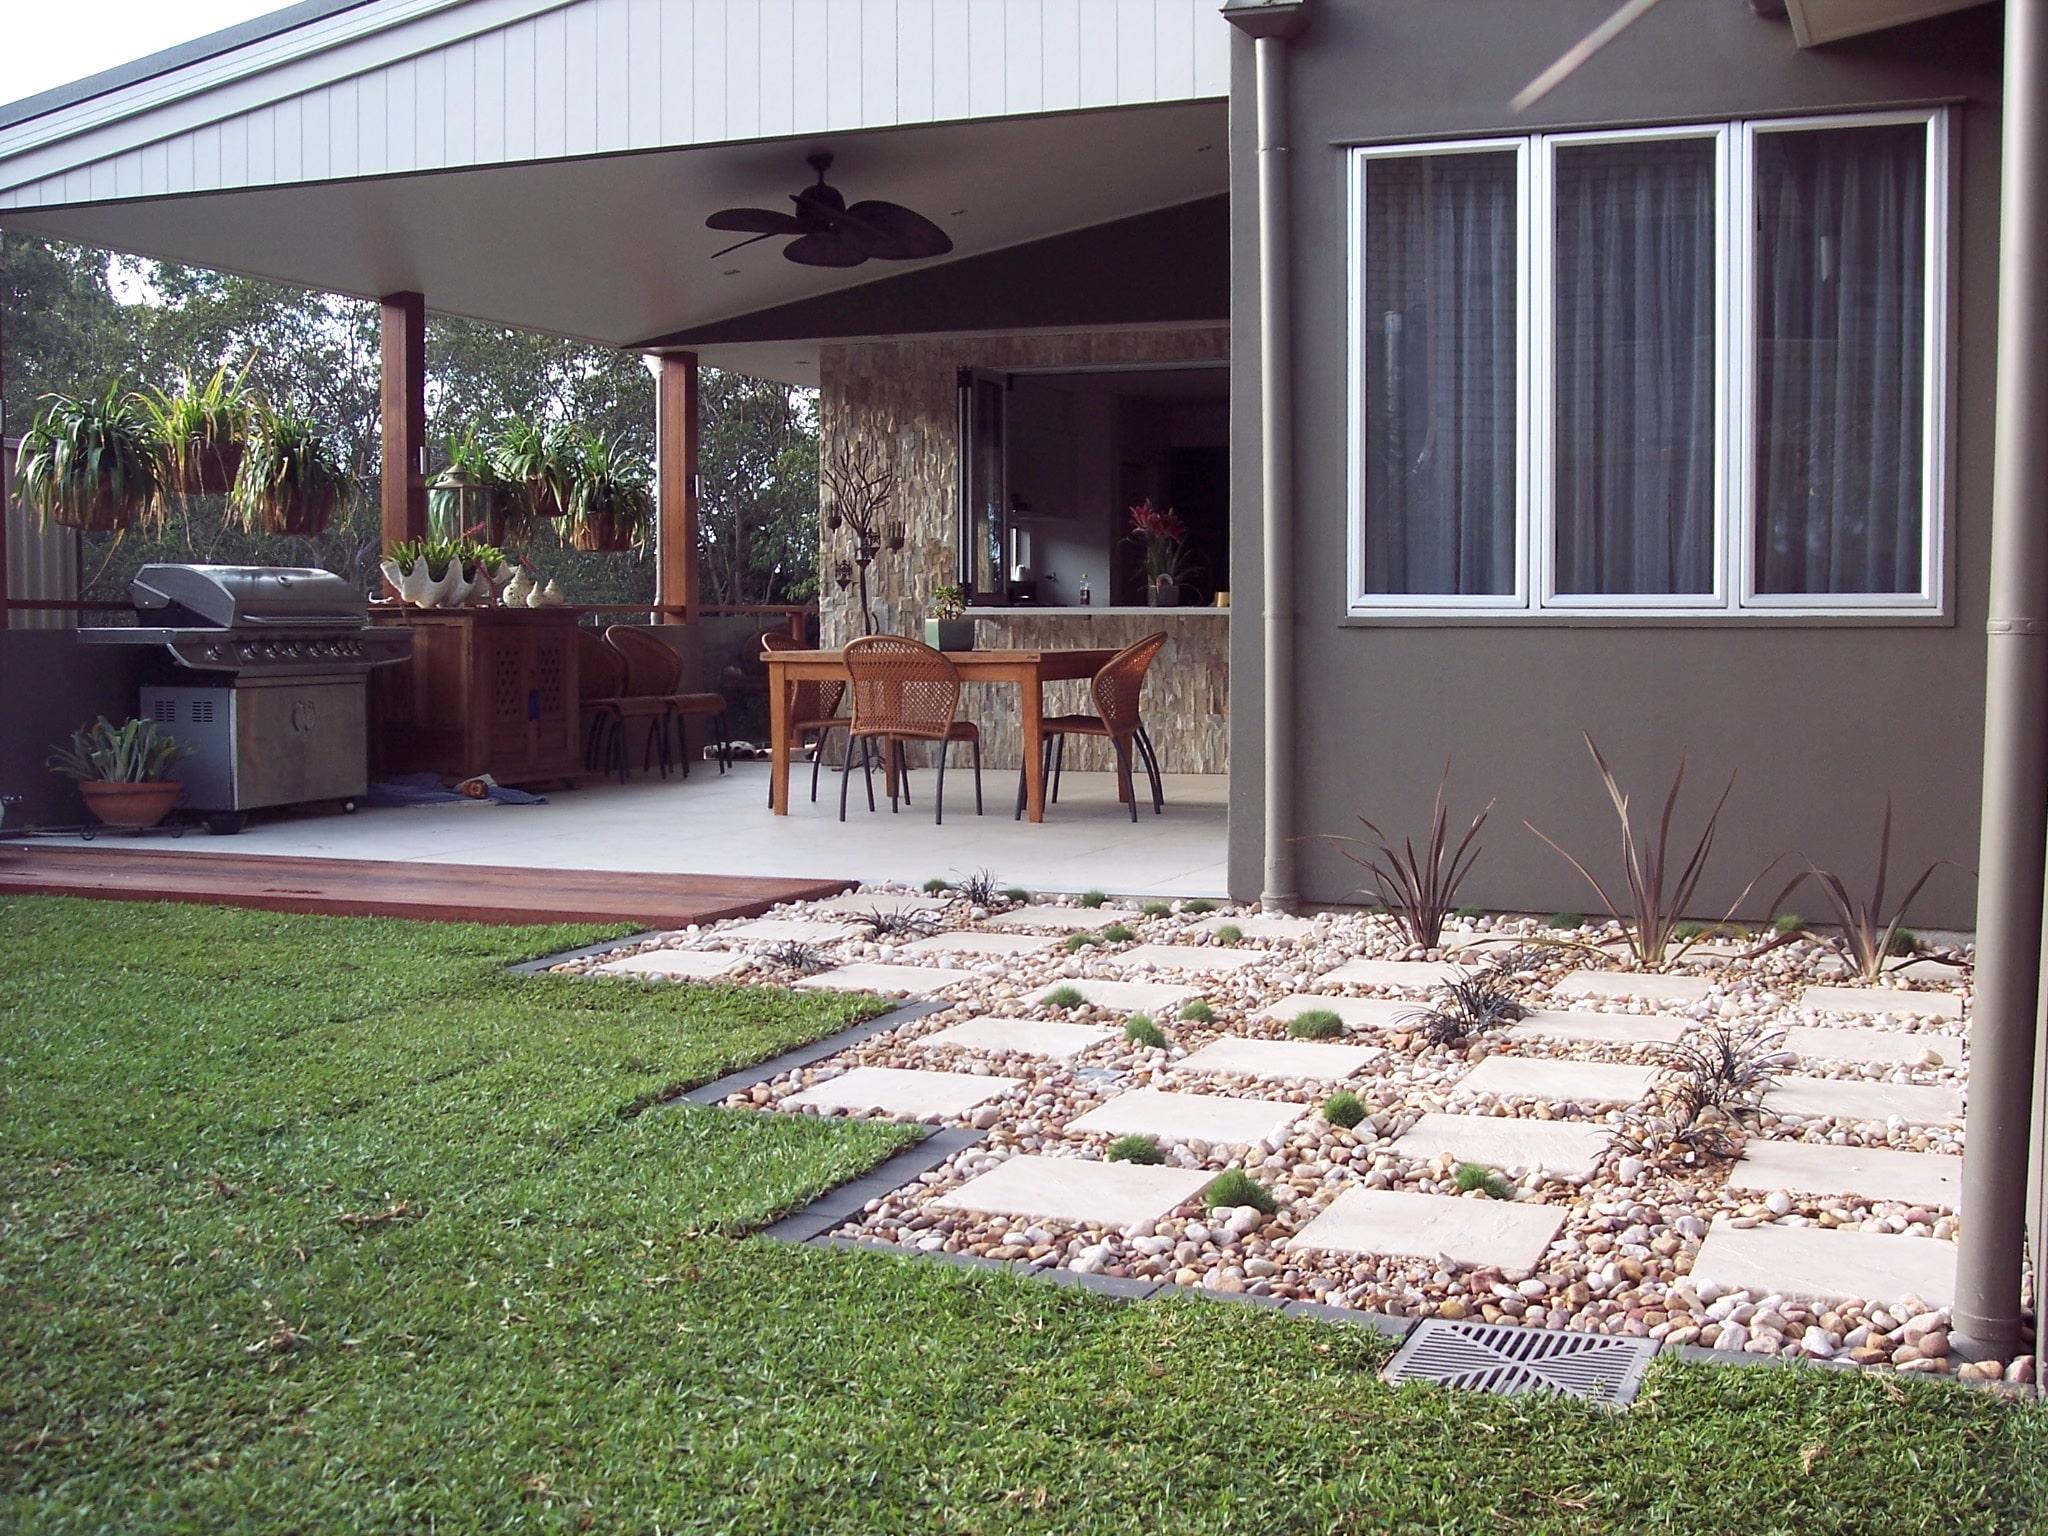 Backyard landscaping mcdowall brisbane for New home designs brisbane